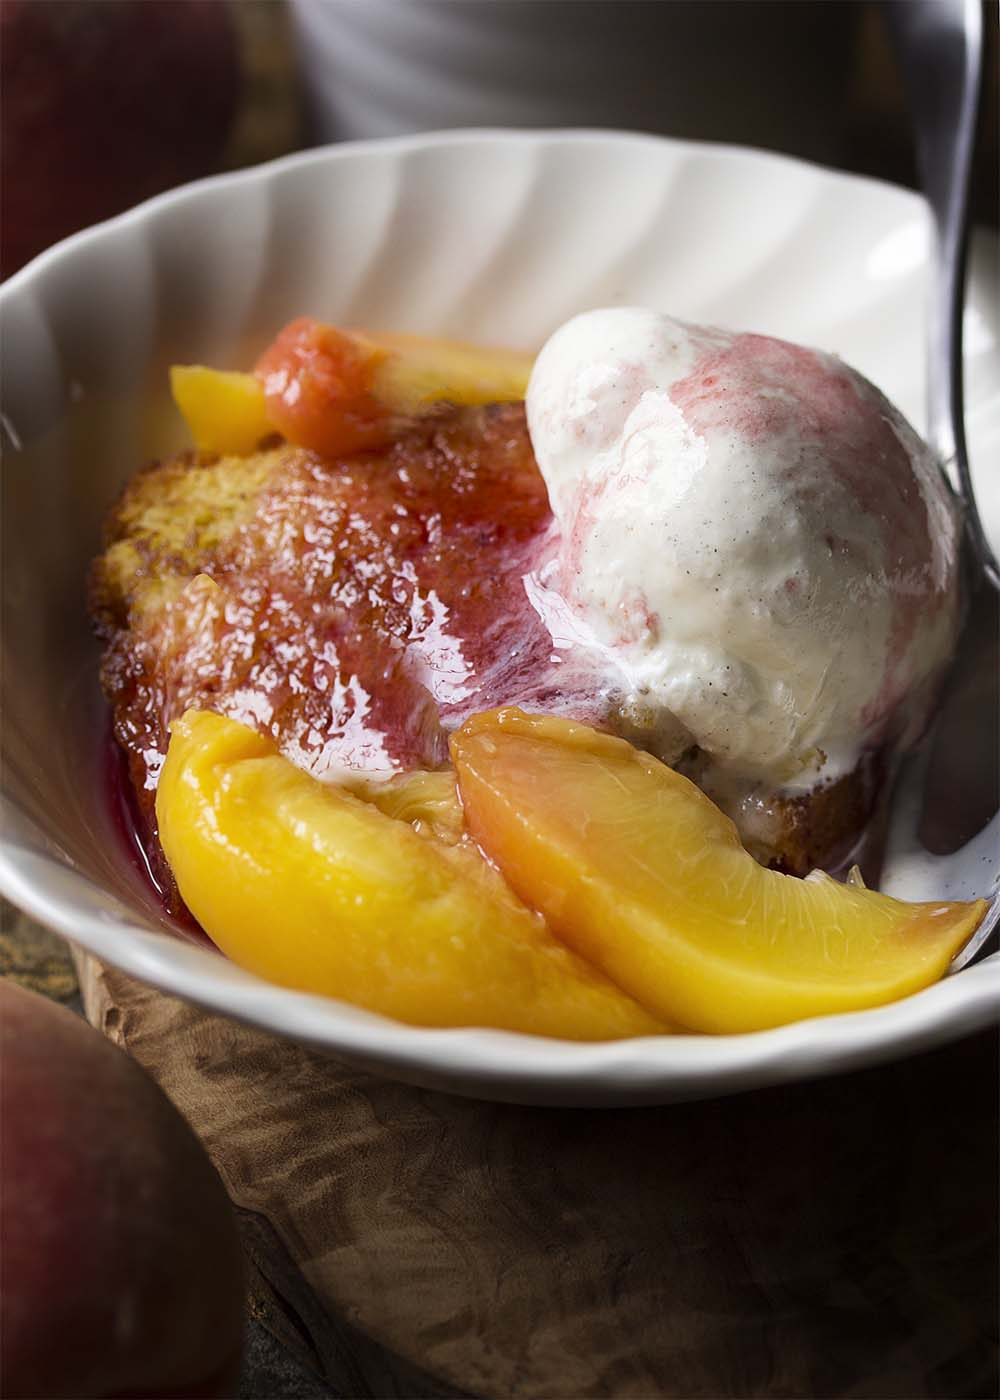 Close up of a bowl of toasted pound cake topped with juicy poached peaches, spiced syrup, and melting vanilla ice cream.